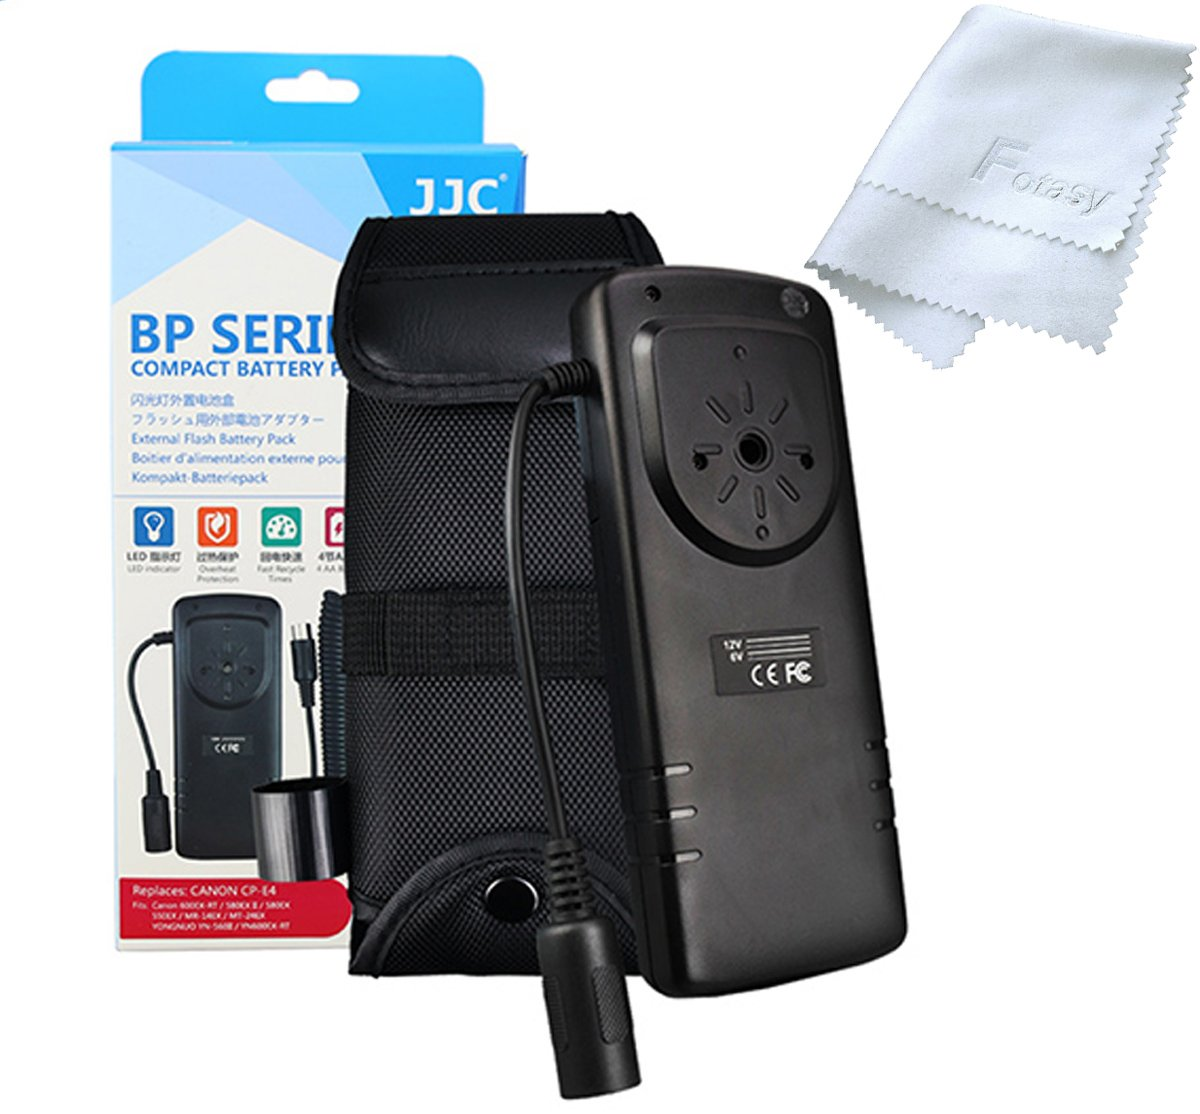 JJC BP-CA1 Pro External Flash Battery Pack replaces Canon CP-E4, for Canon 600EX II-RT/600EX-RT/580EX II/580EX